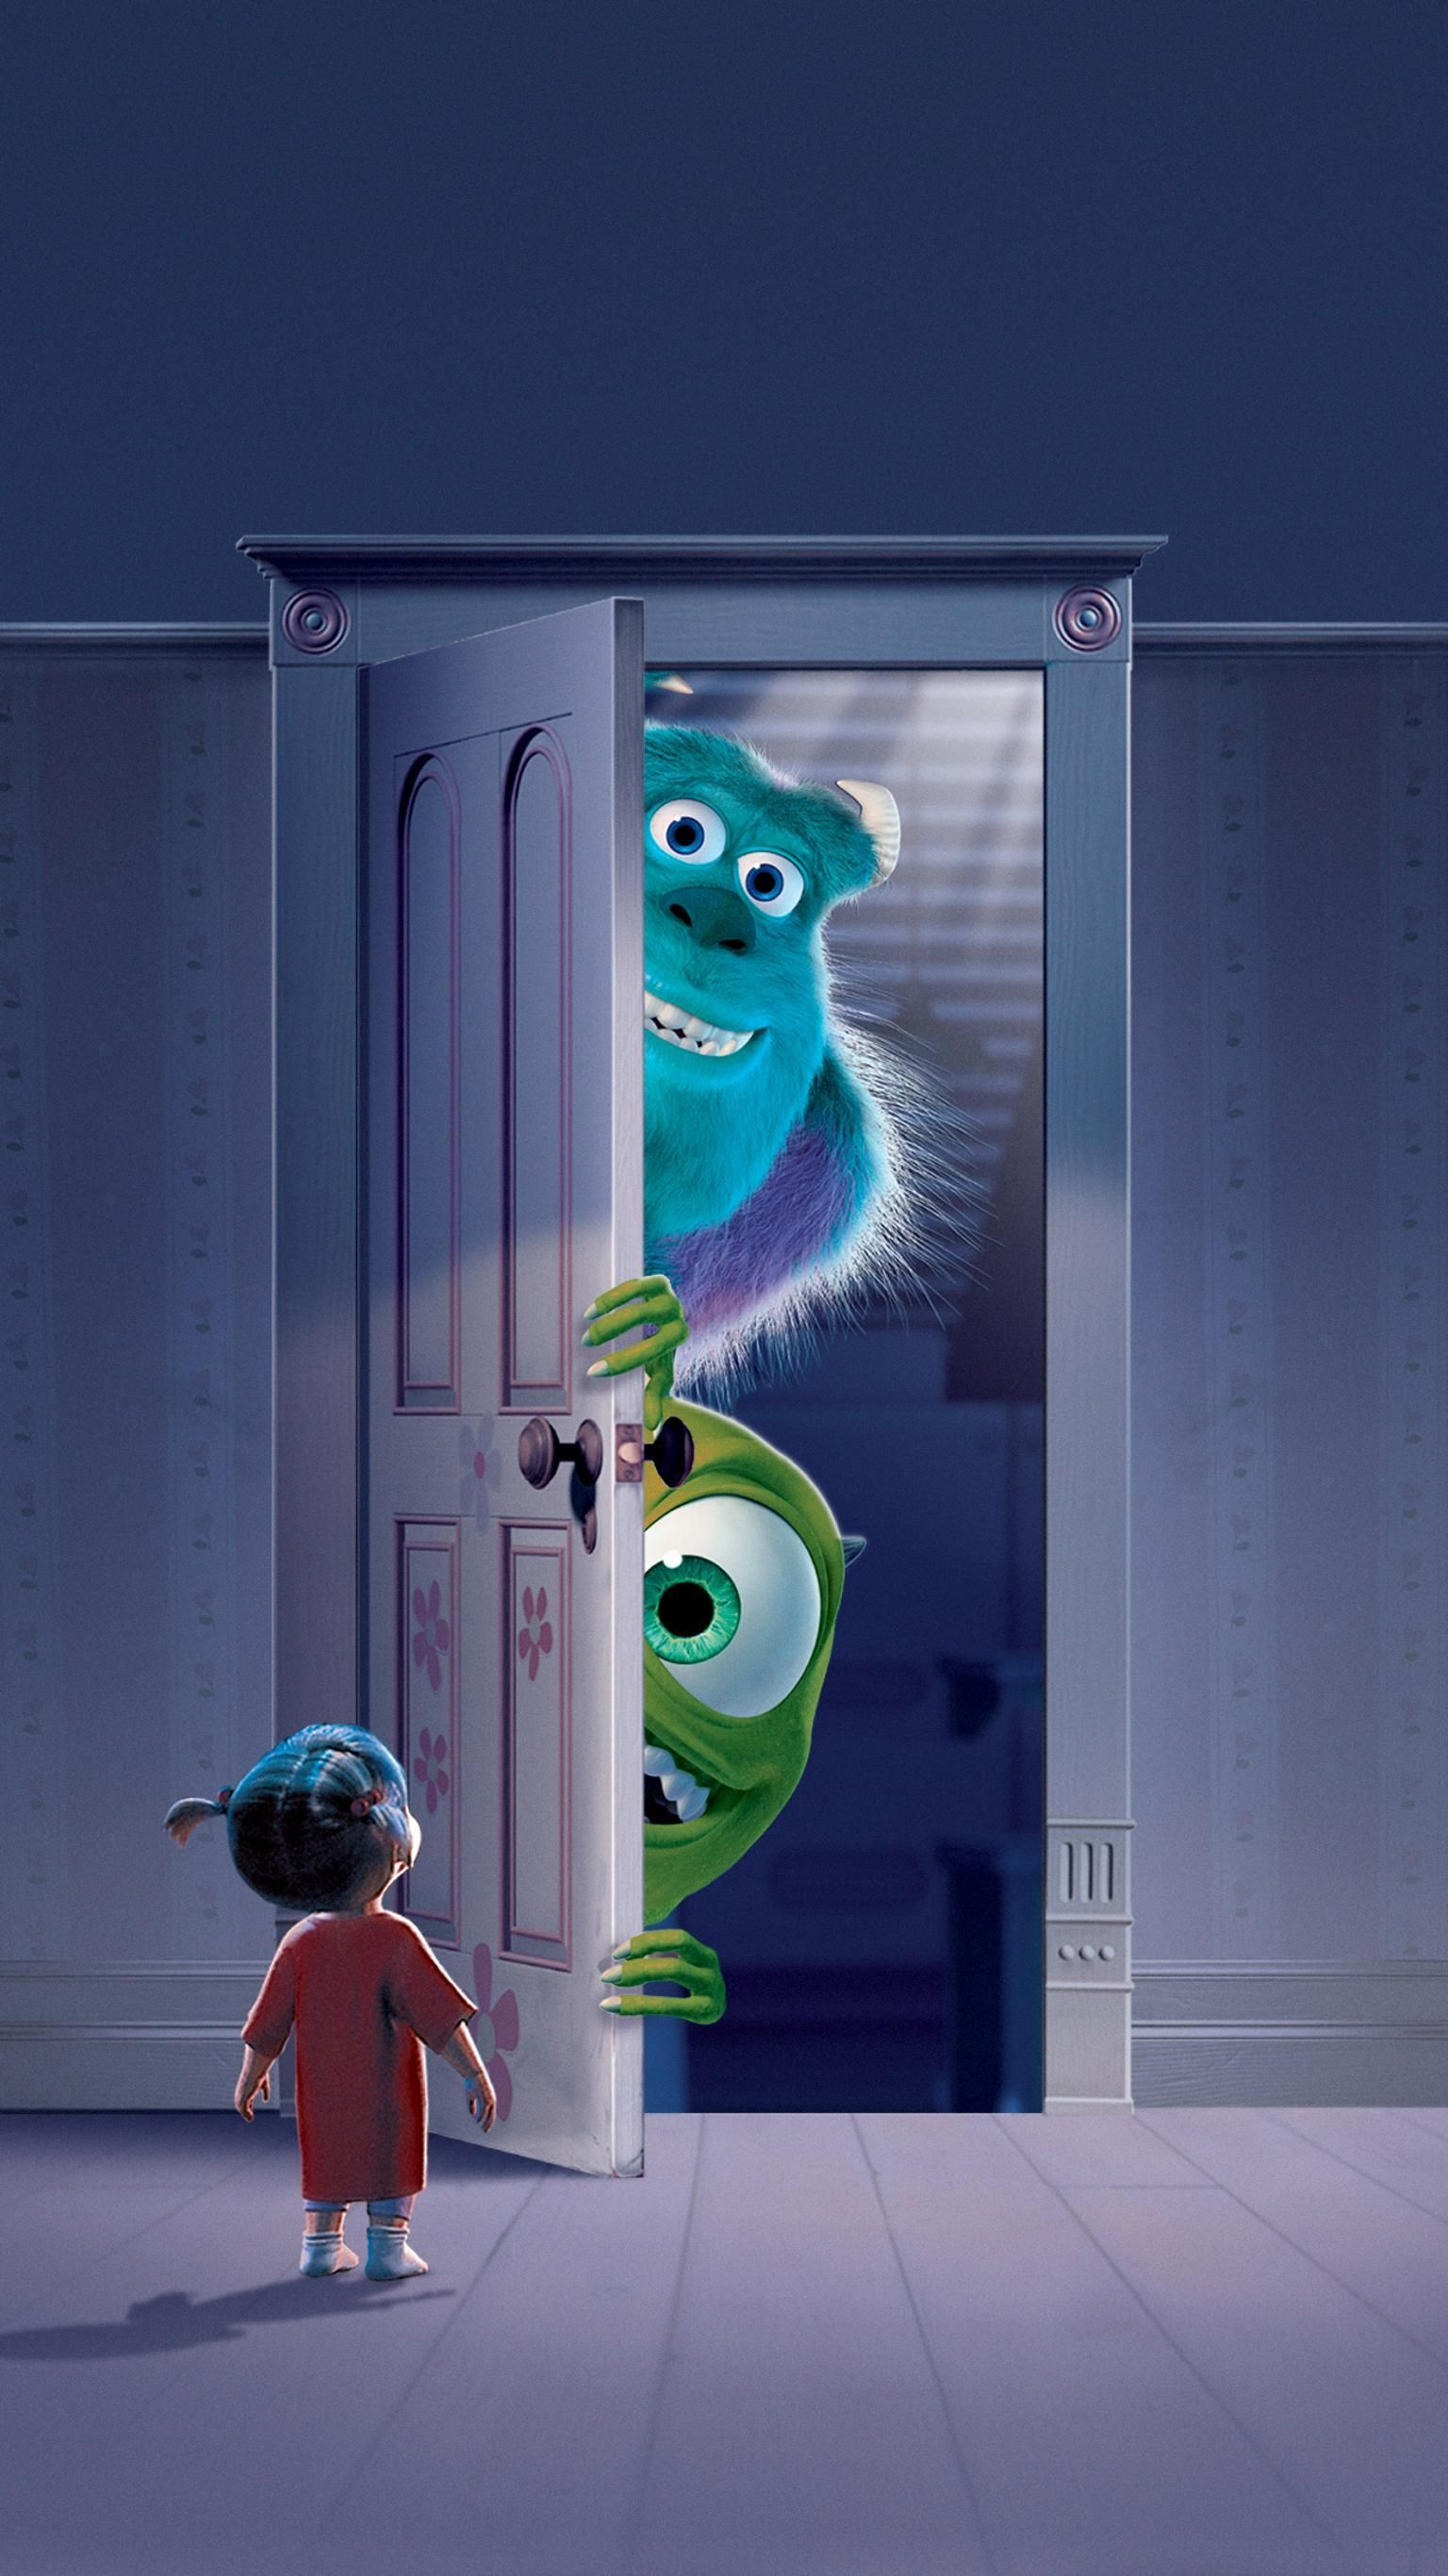 monsters inc wallpapers top free monsters inc backgrounds wallpaperaccess monsters inc wallpapers top free